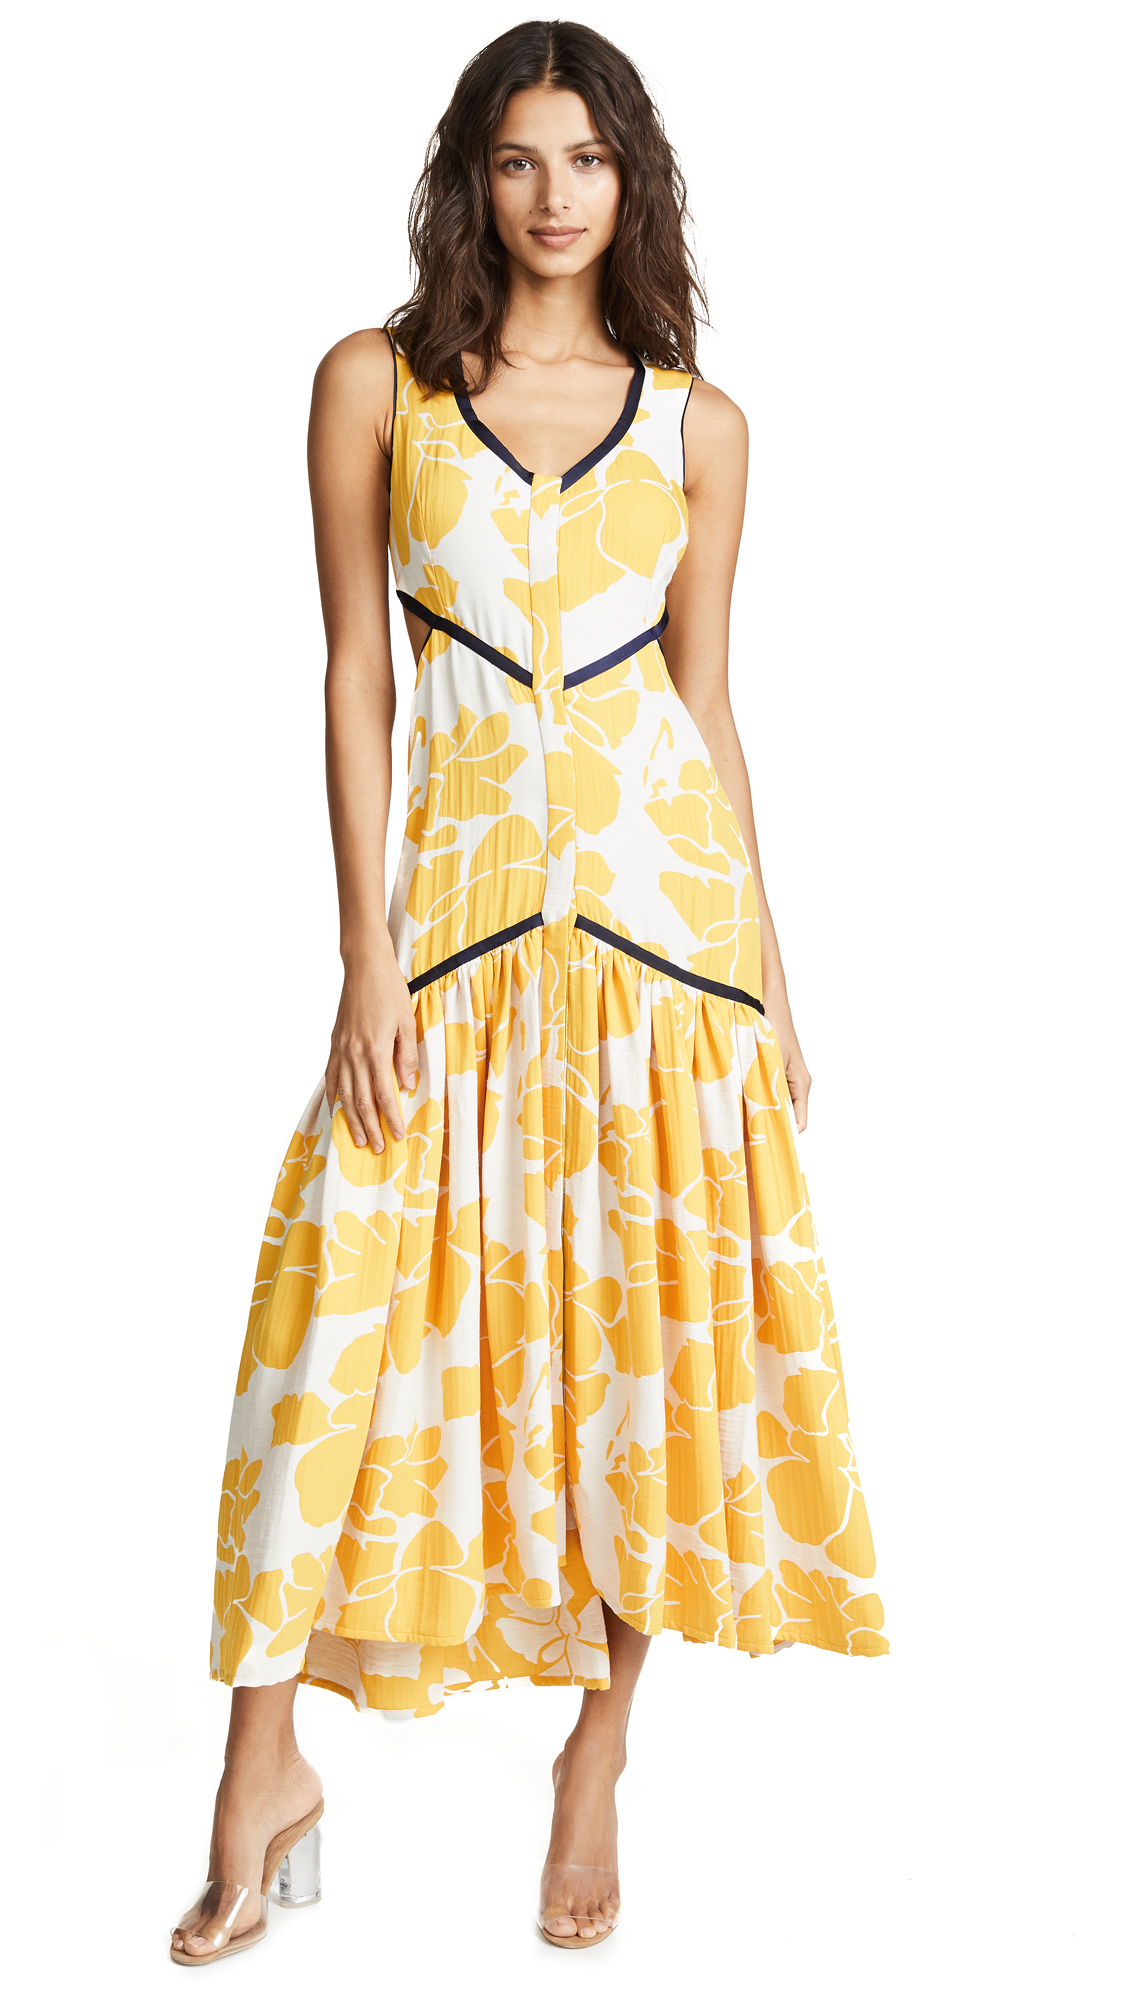 Alexis Royal Dress - Marigold